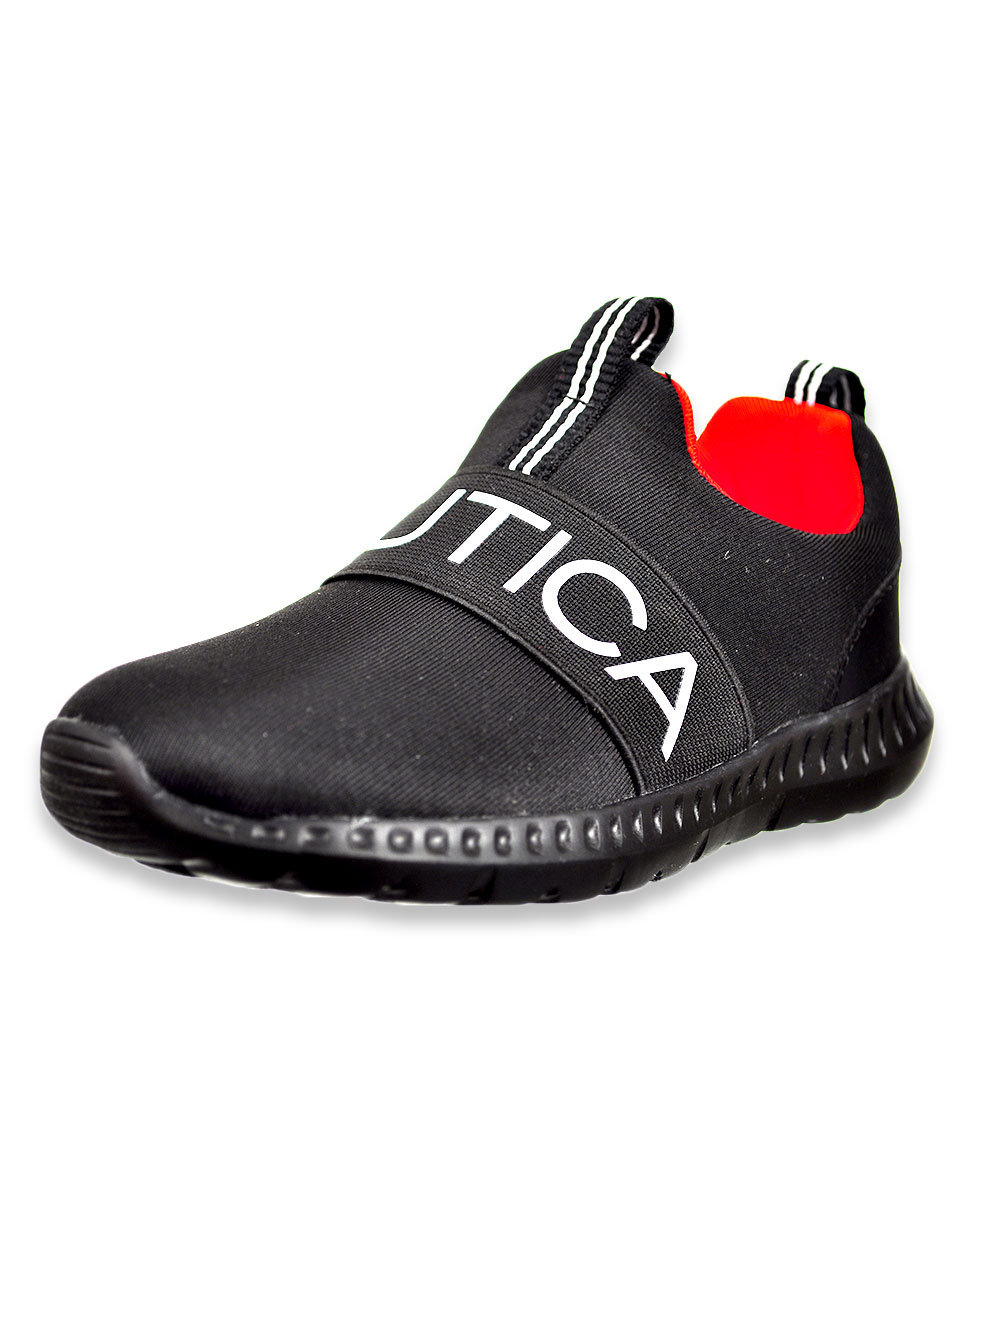 Boys' Canvey Sneakers by Nautica in